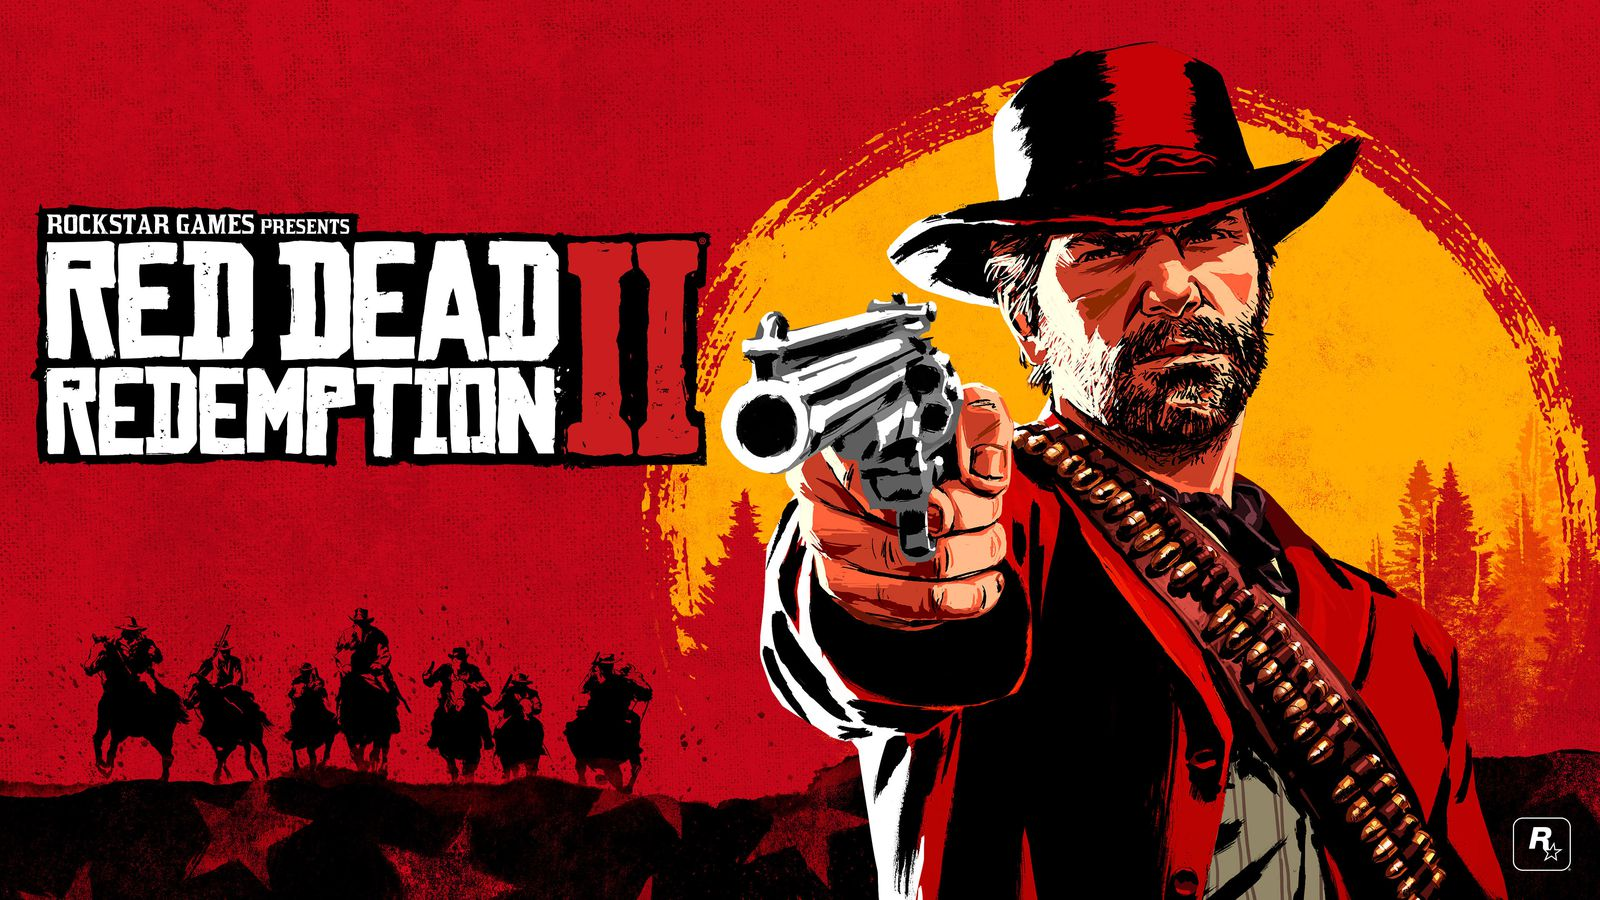 rdr2-officialart-3840x2160.jpg